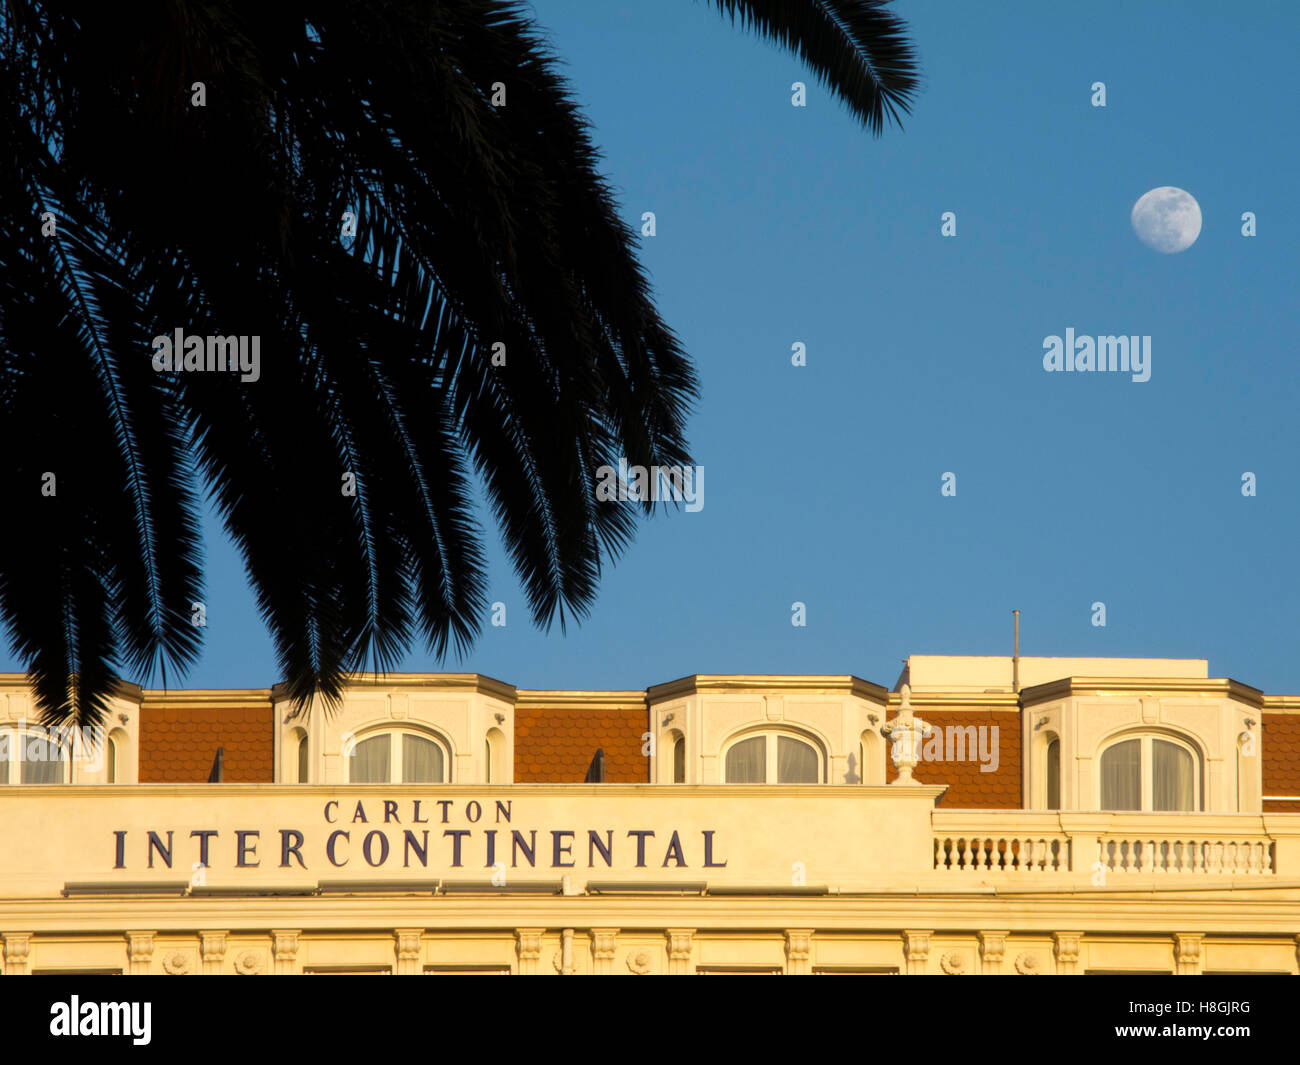 Frankreich, Cote d Azur, Cannes, Hotel Carlton Intercontinental - Stock Image